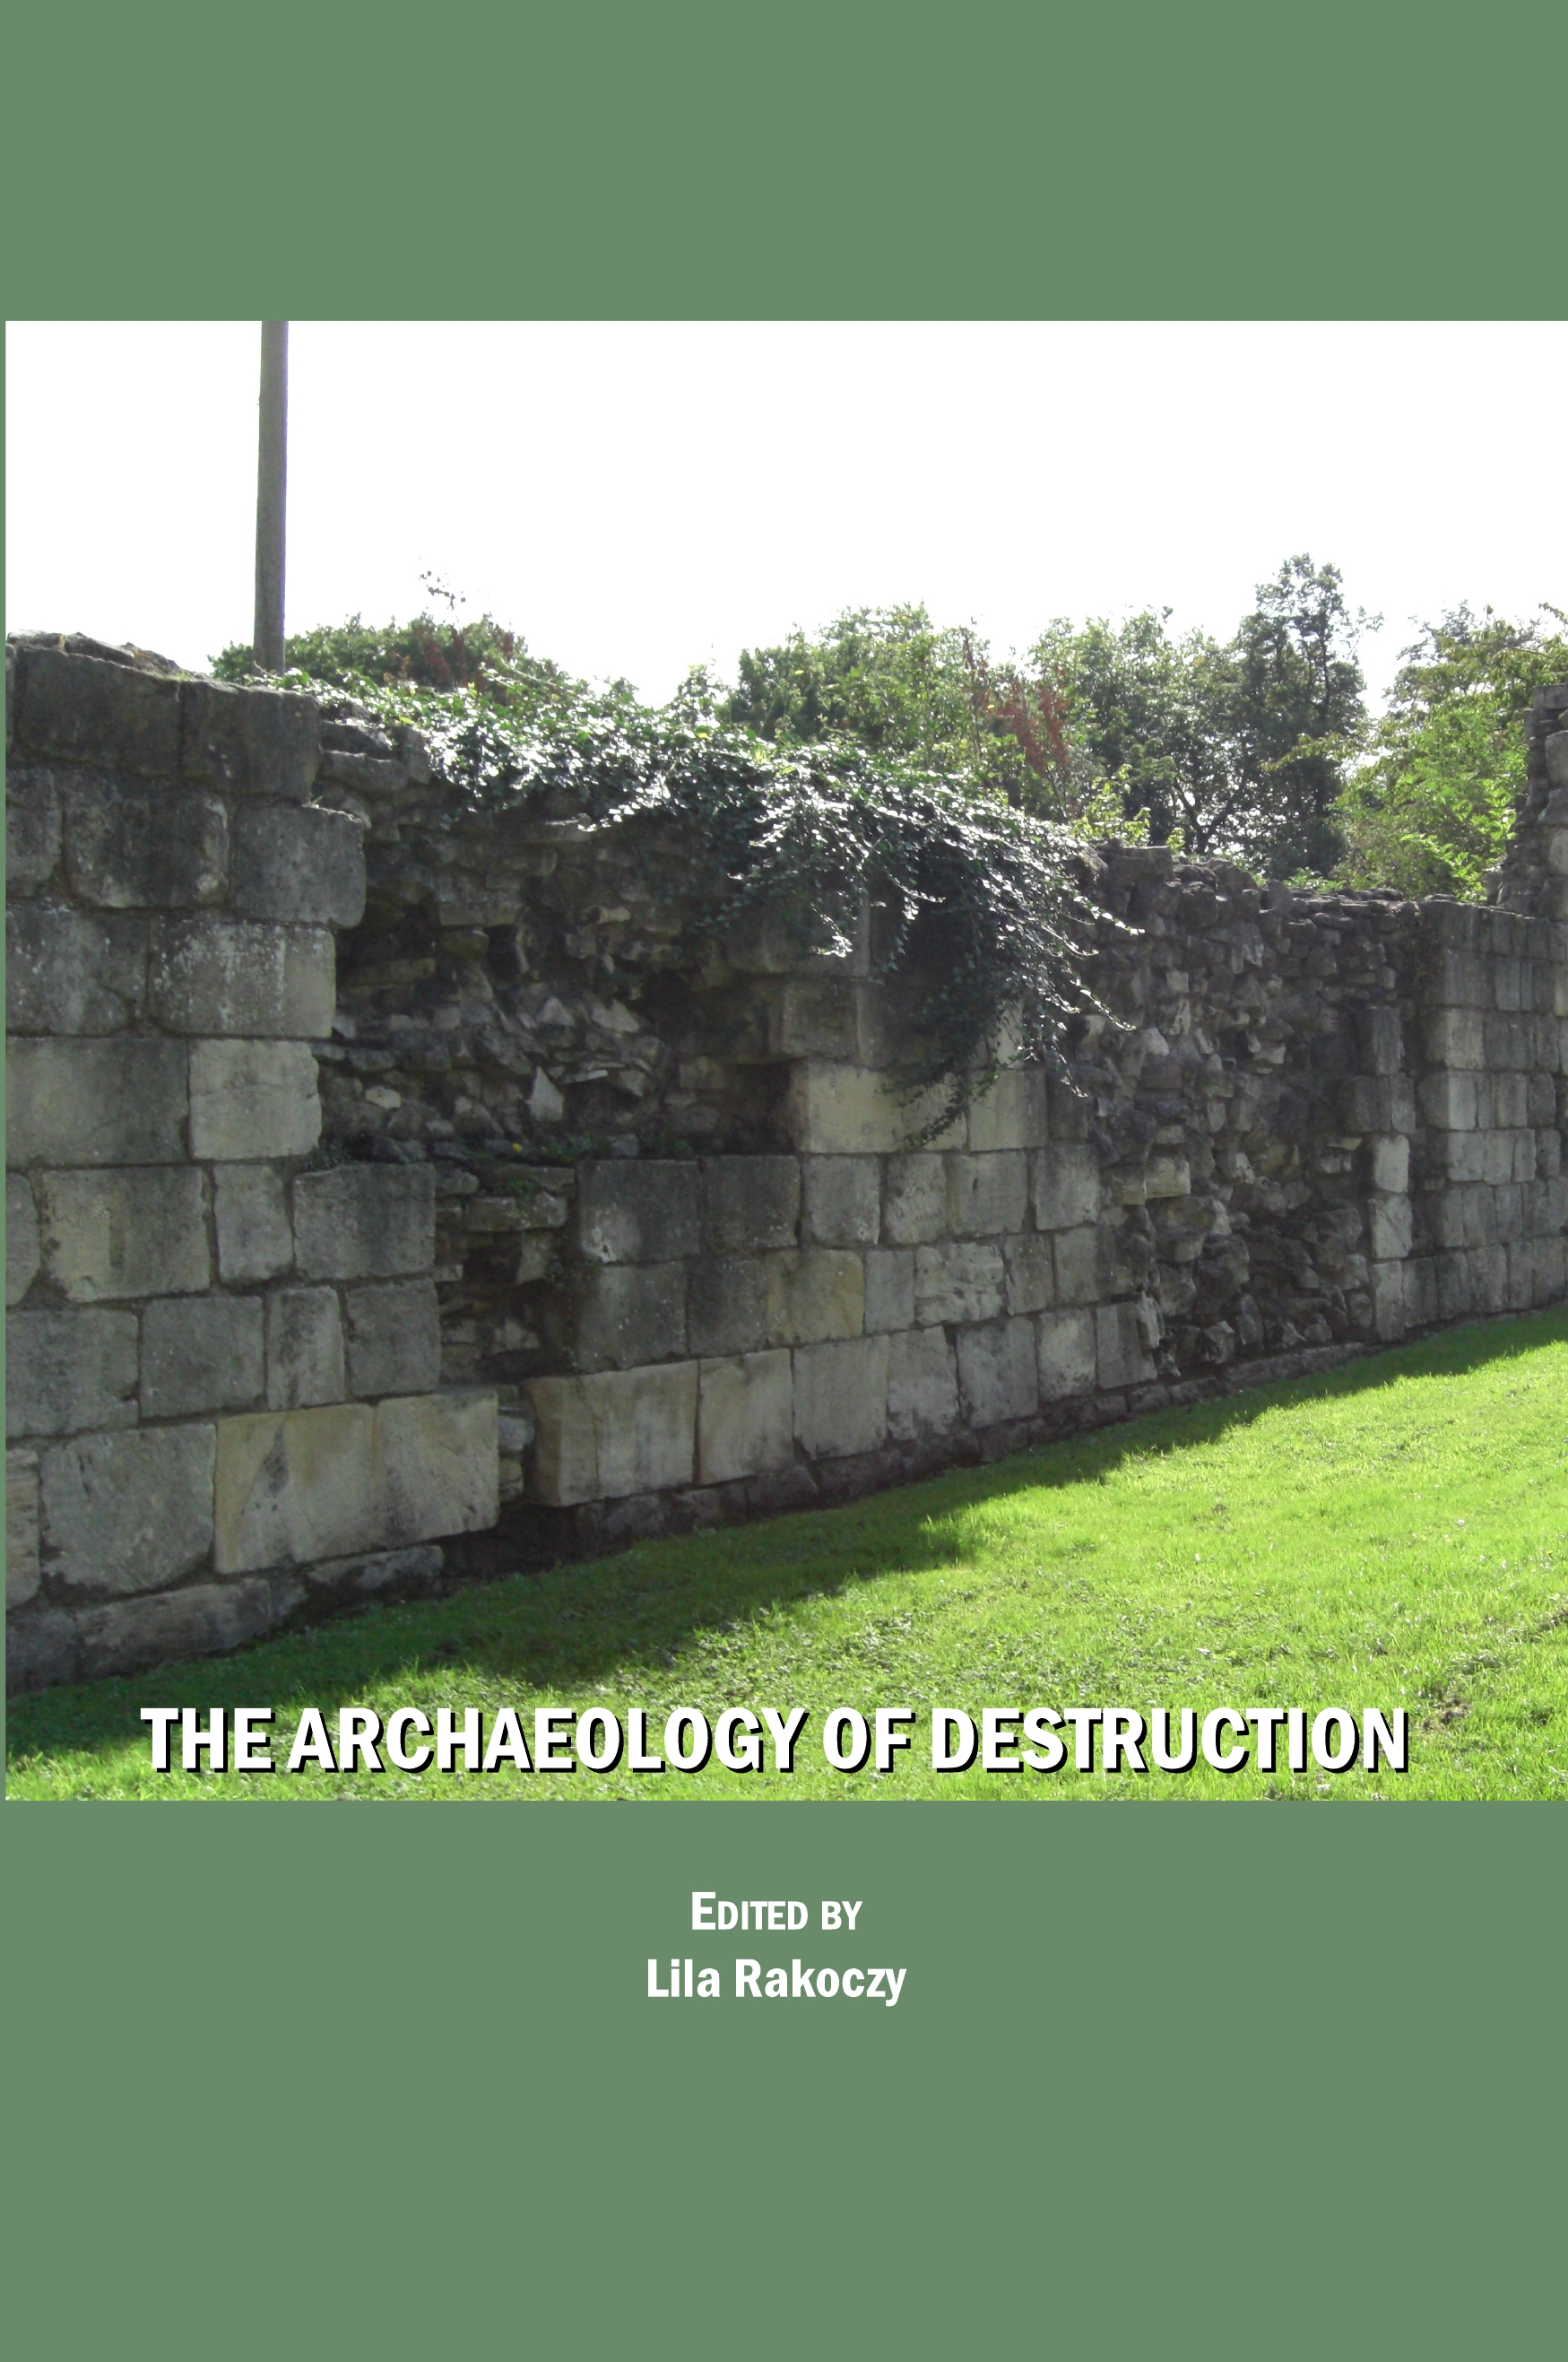 The Archaeology of Destruction